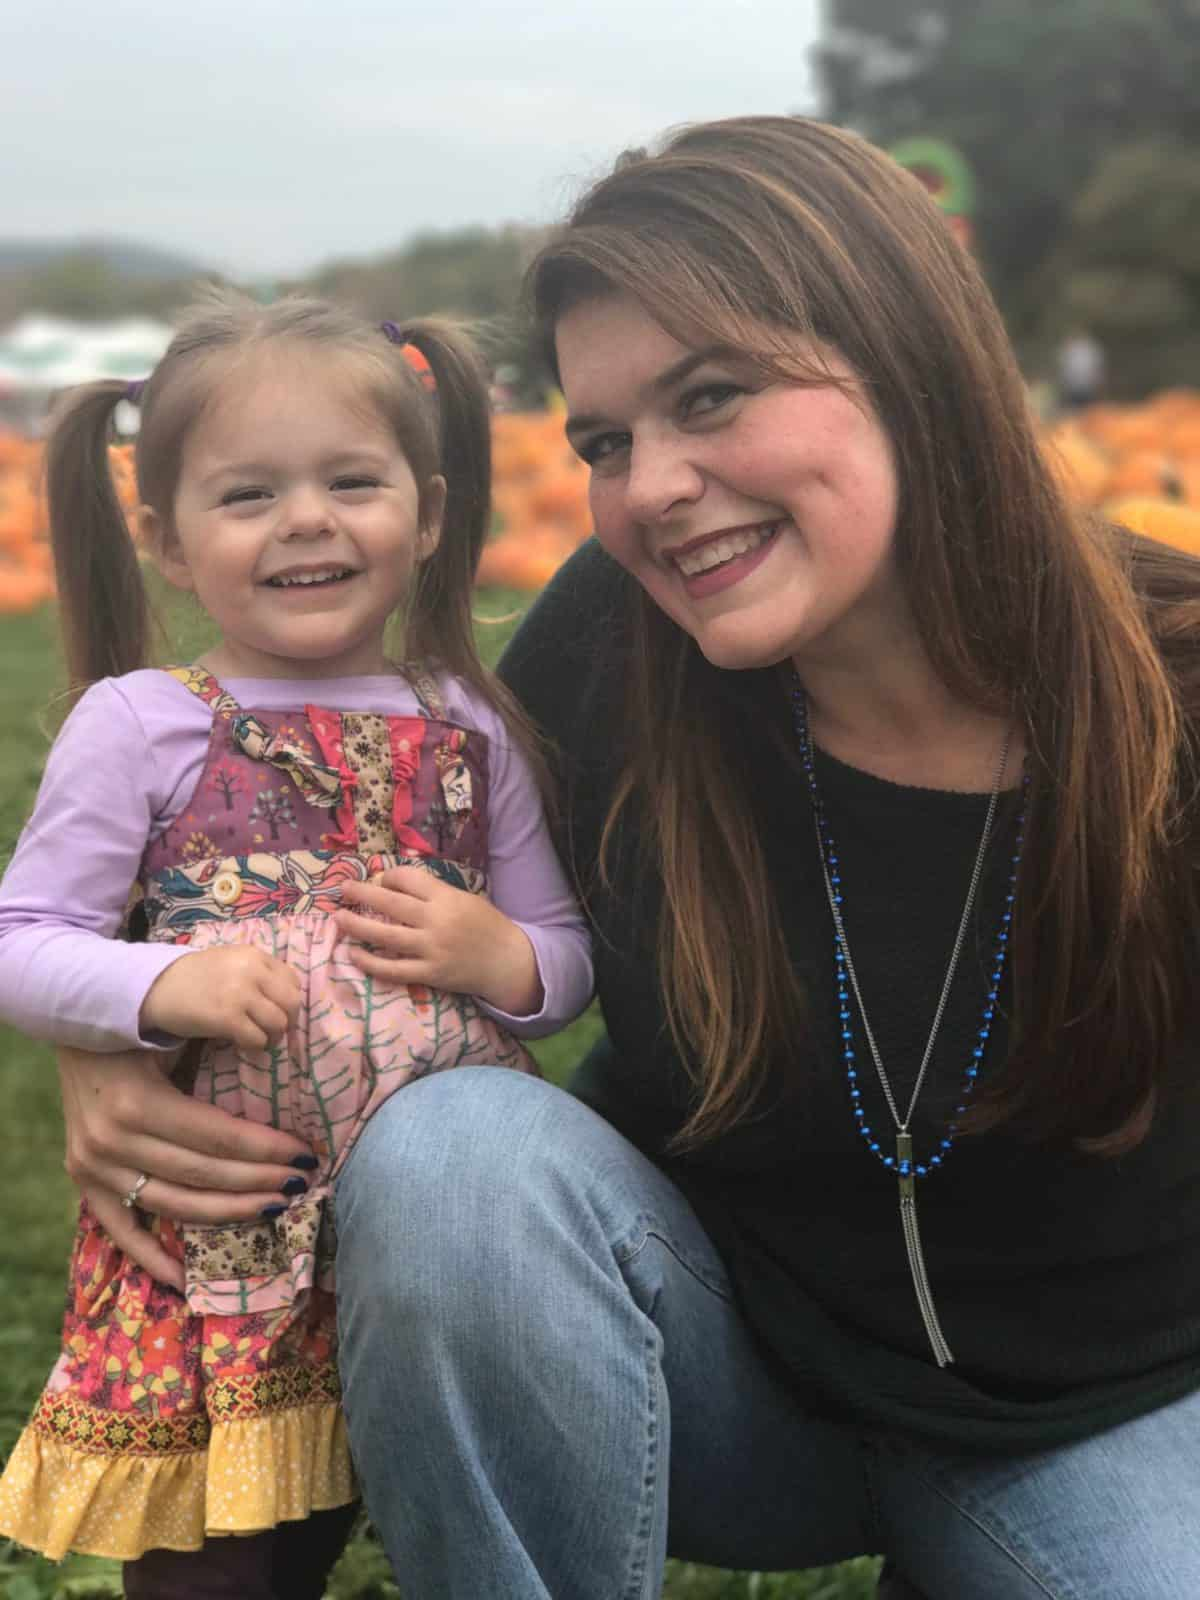 Amy Kuhn and daughter in pumpkin patch